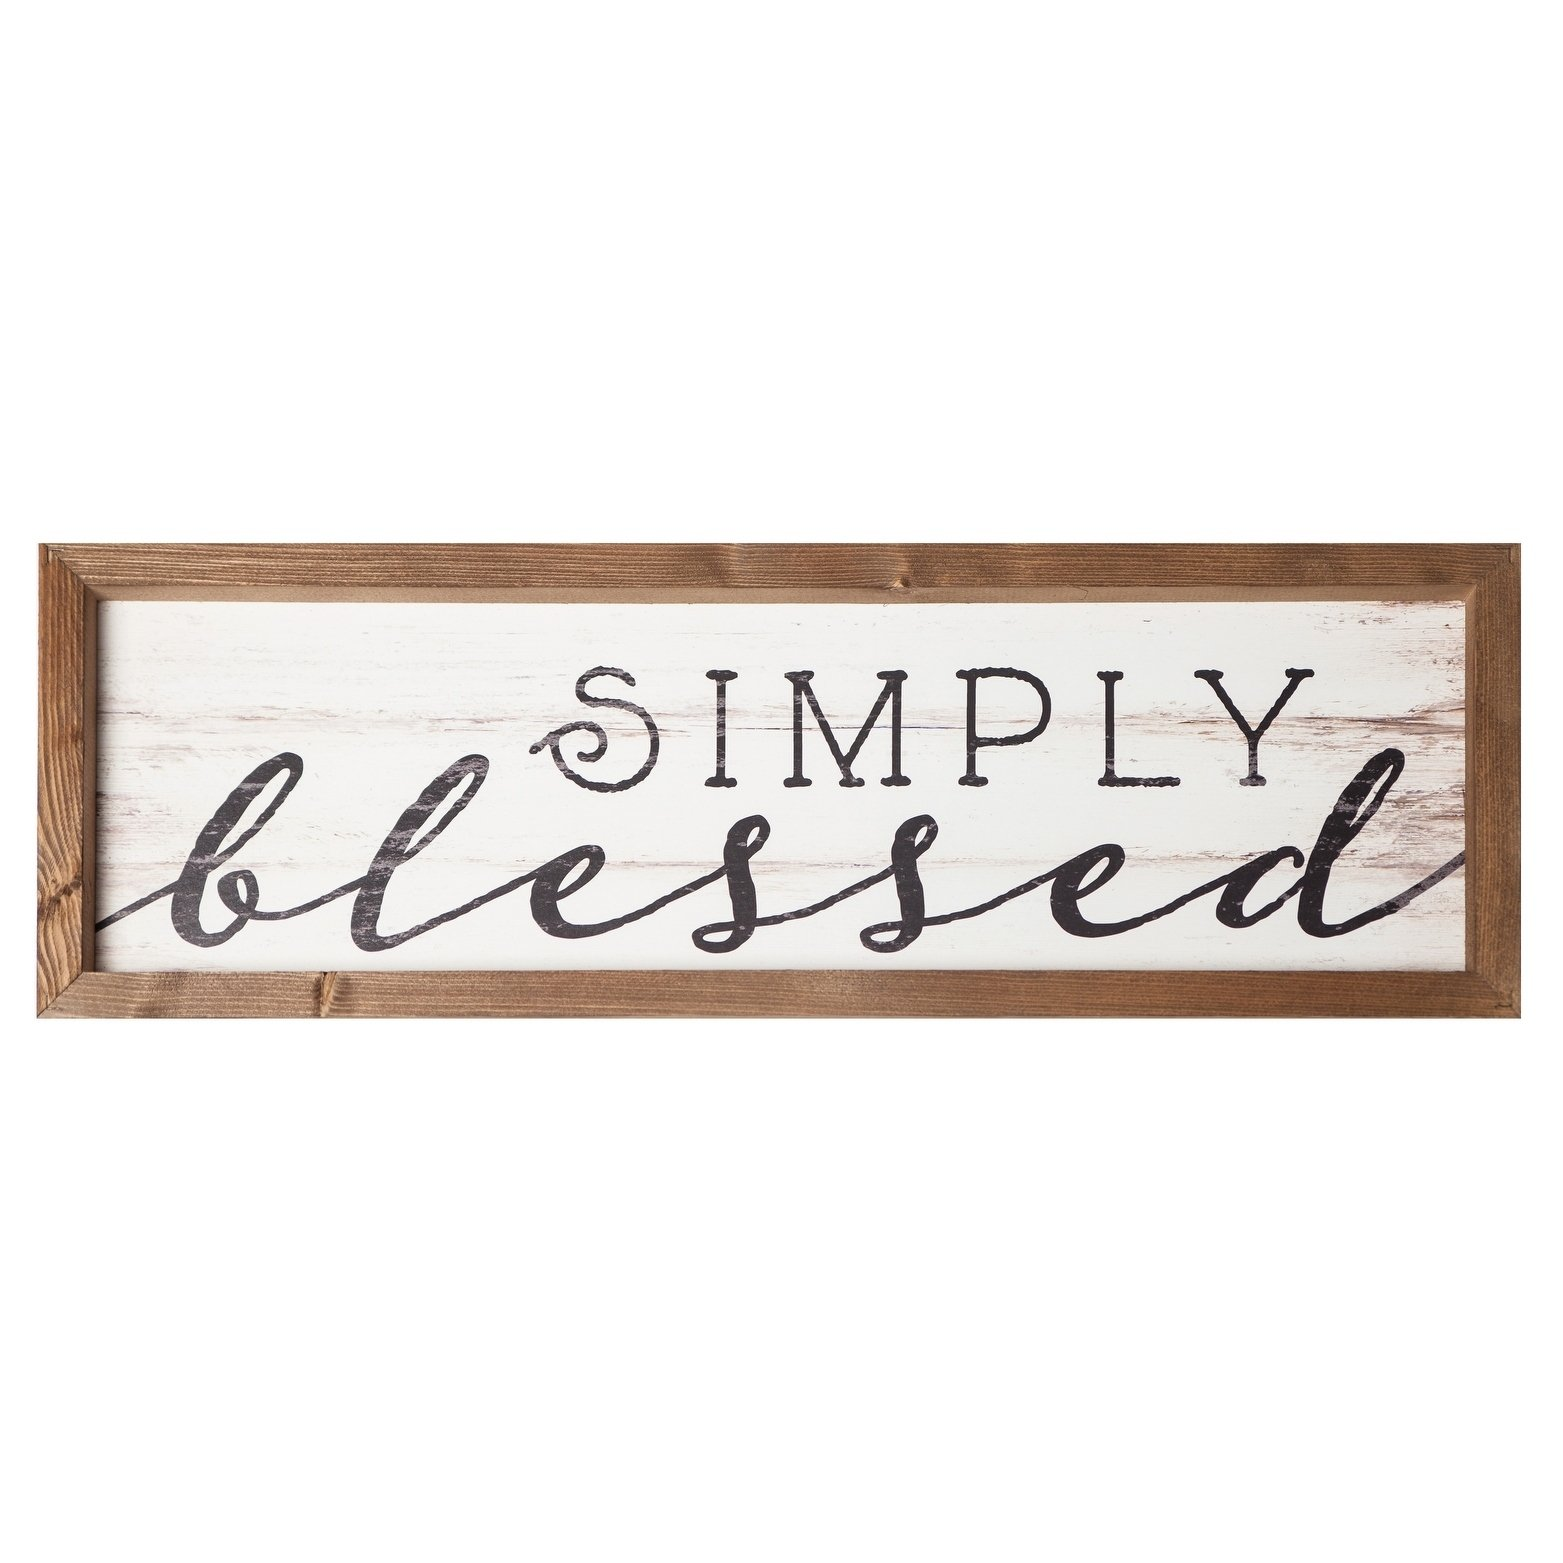 Simply Blessed Framed Art Assembled Wall Decor Brown Wood Wood Signs Sayings Barn Wood Projects Wood Diy